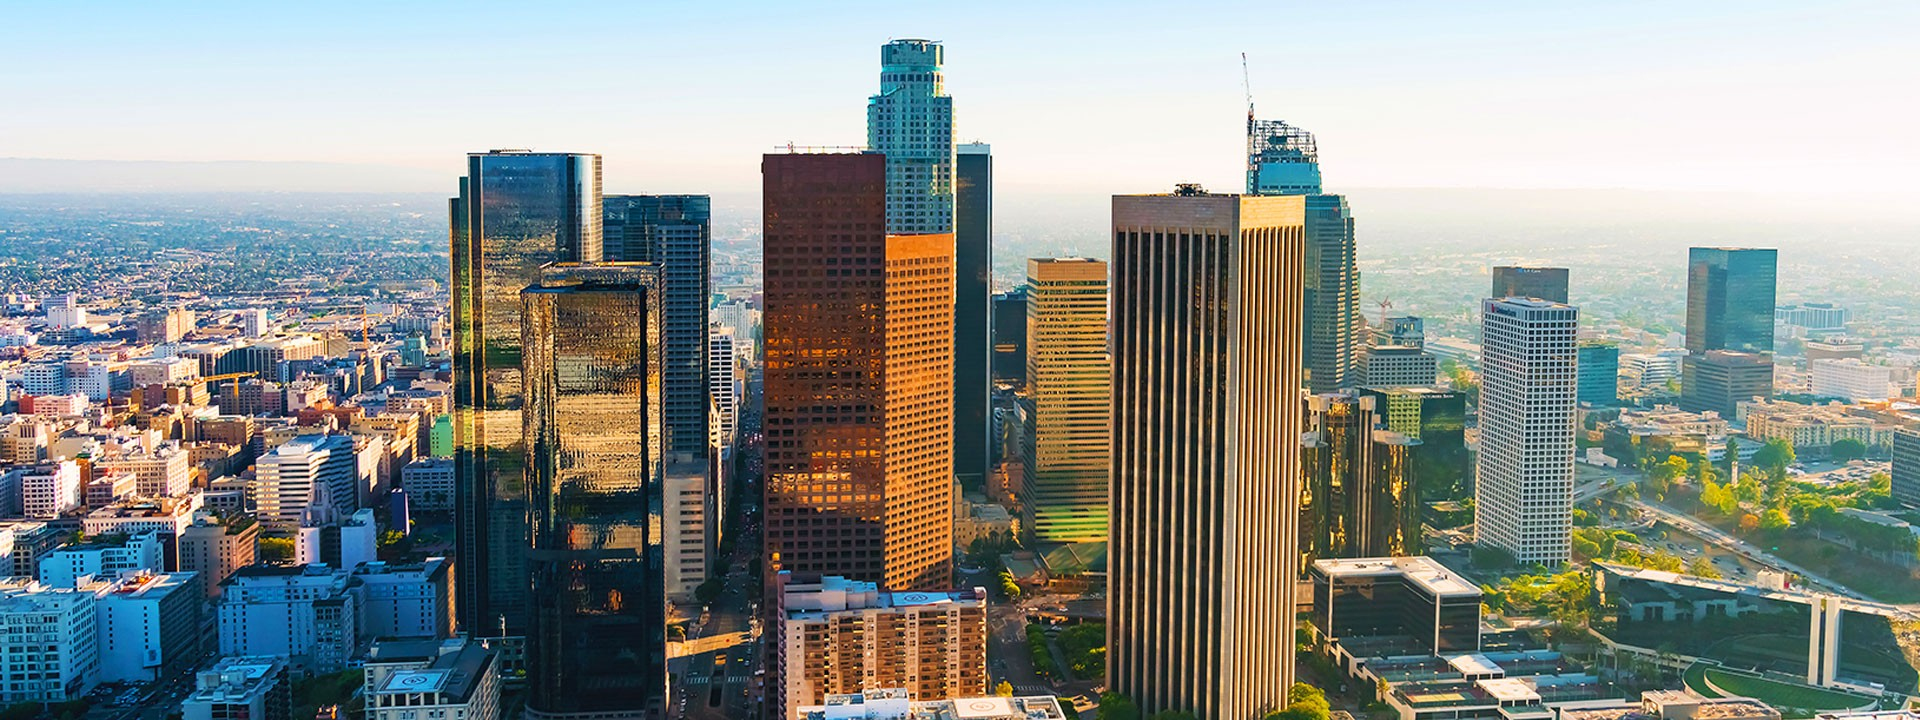 Downtown LA with skyscrapers